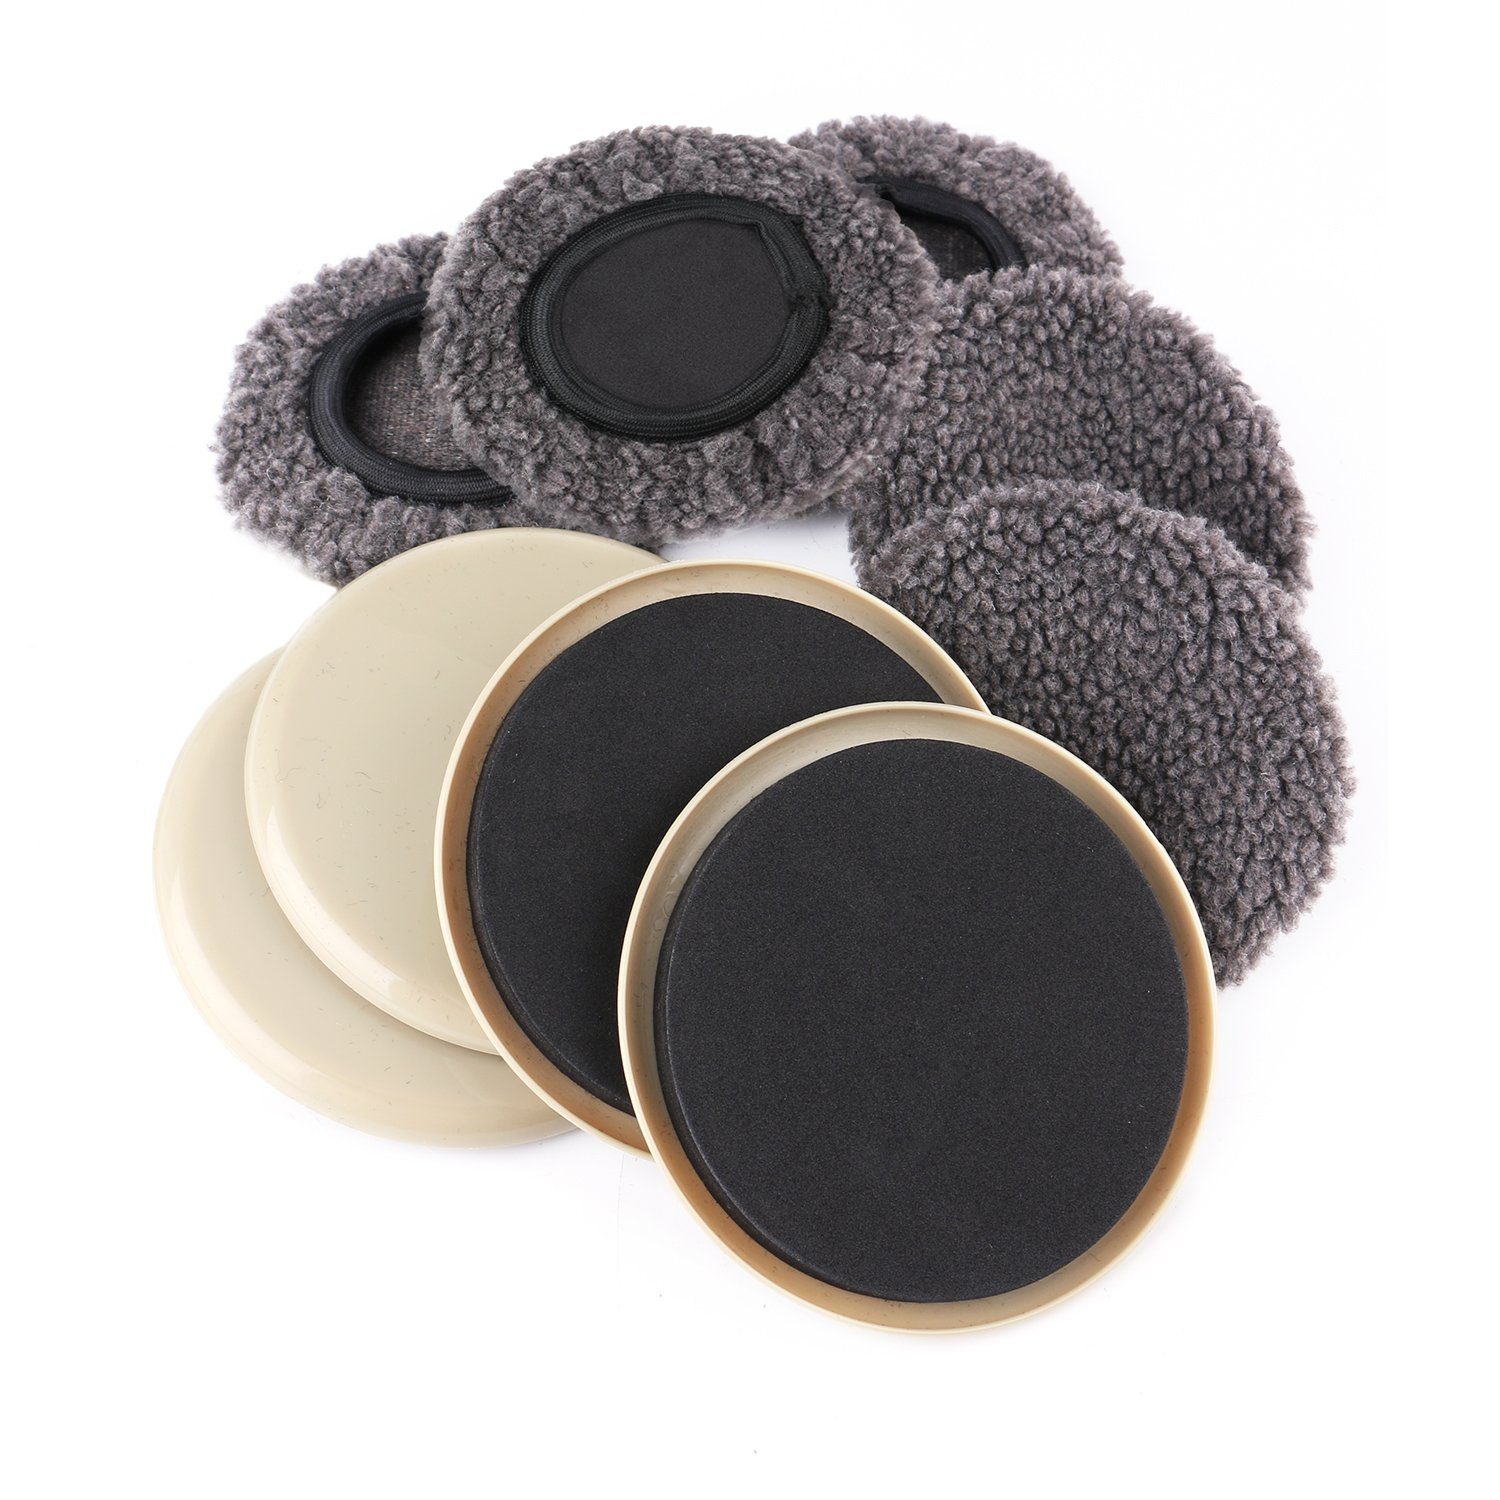 Furniture Sliders for All Surfaces (Carpeted and Hard Surfaces),with Socks, 5 inch, No Scratch, by THETIS Homes